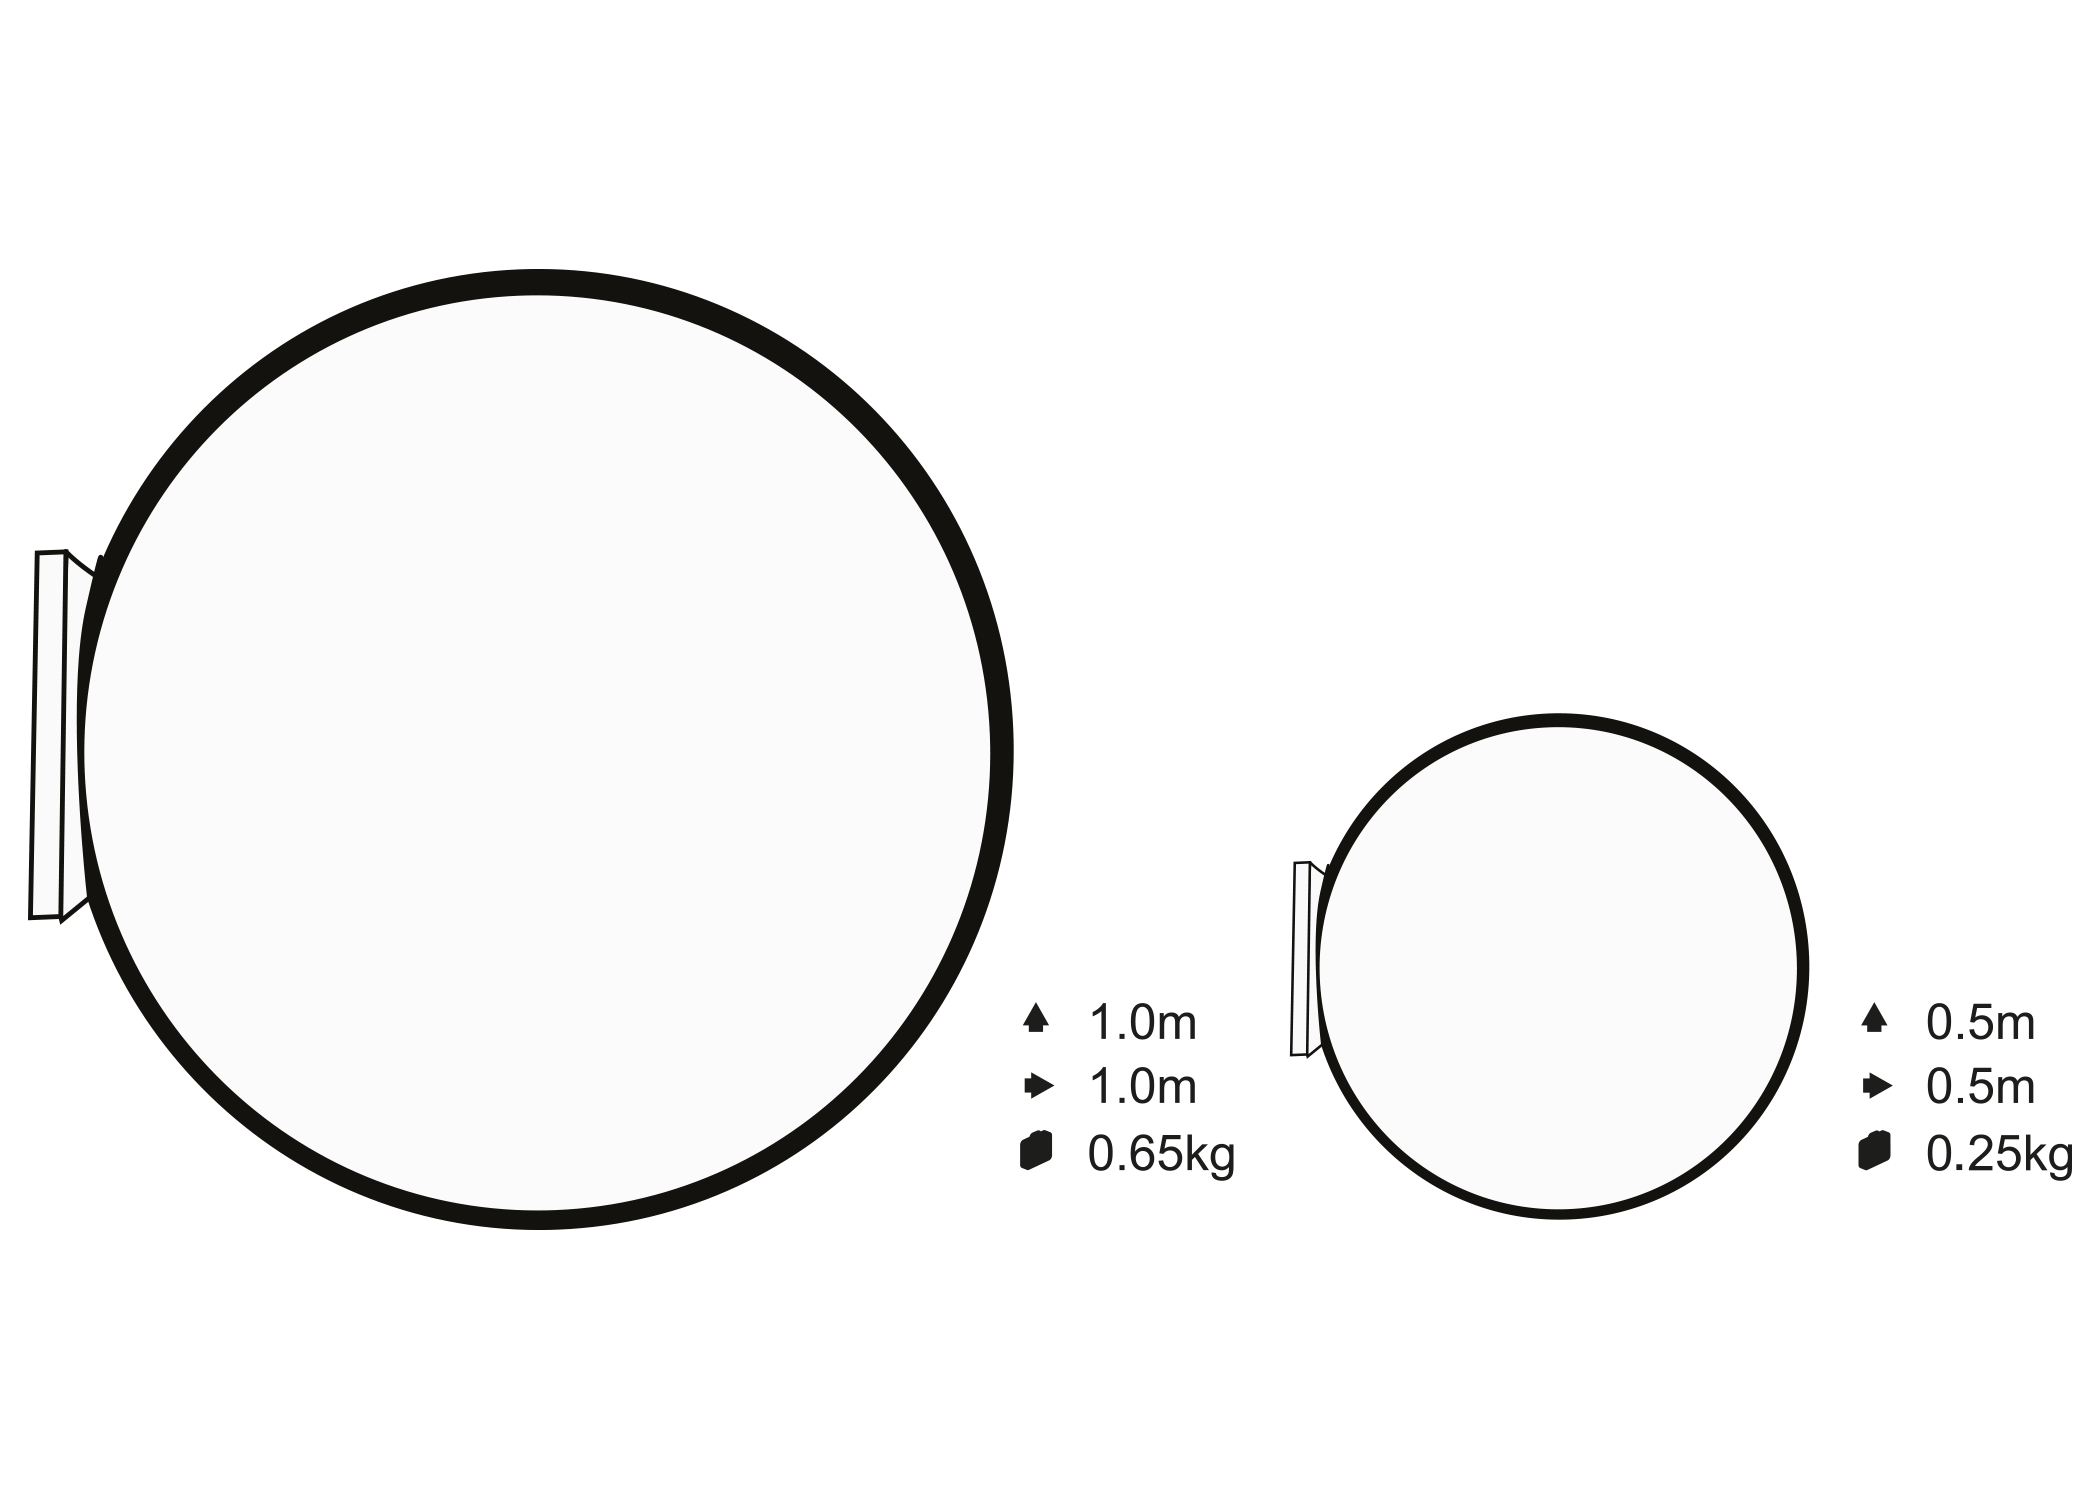 ex-disc_size chart.png